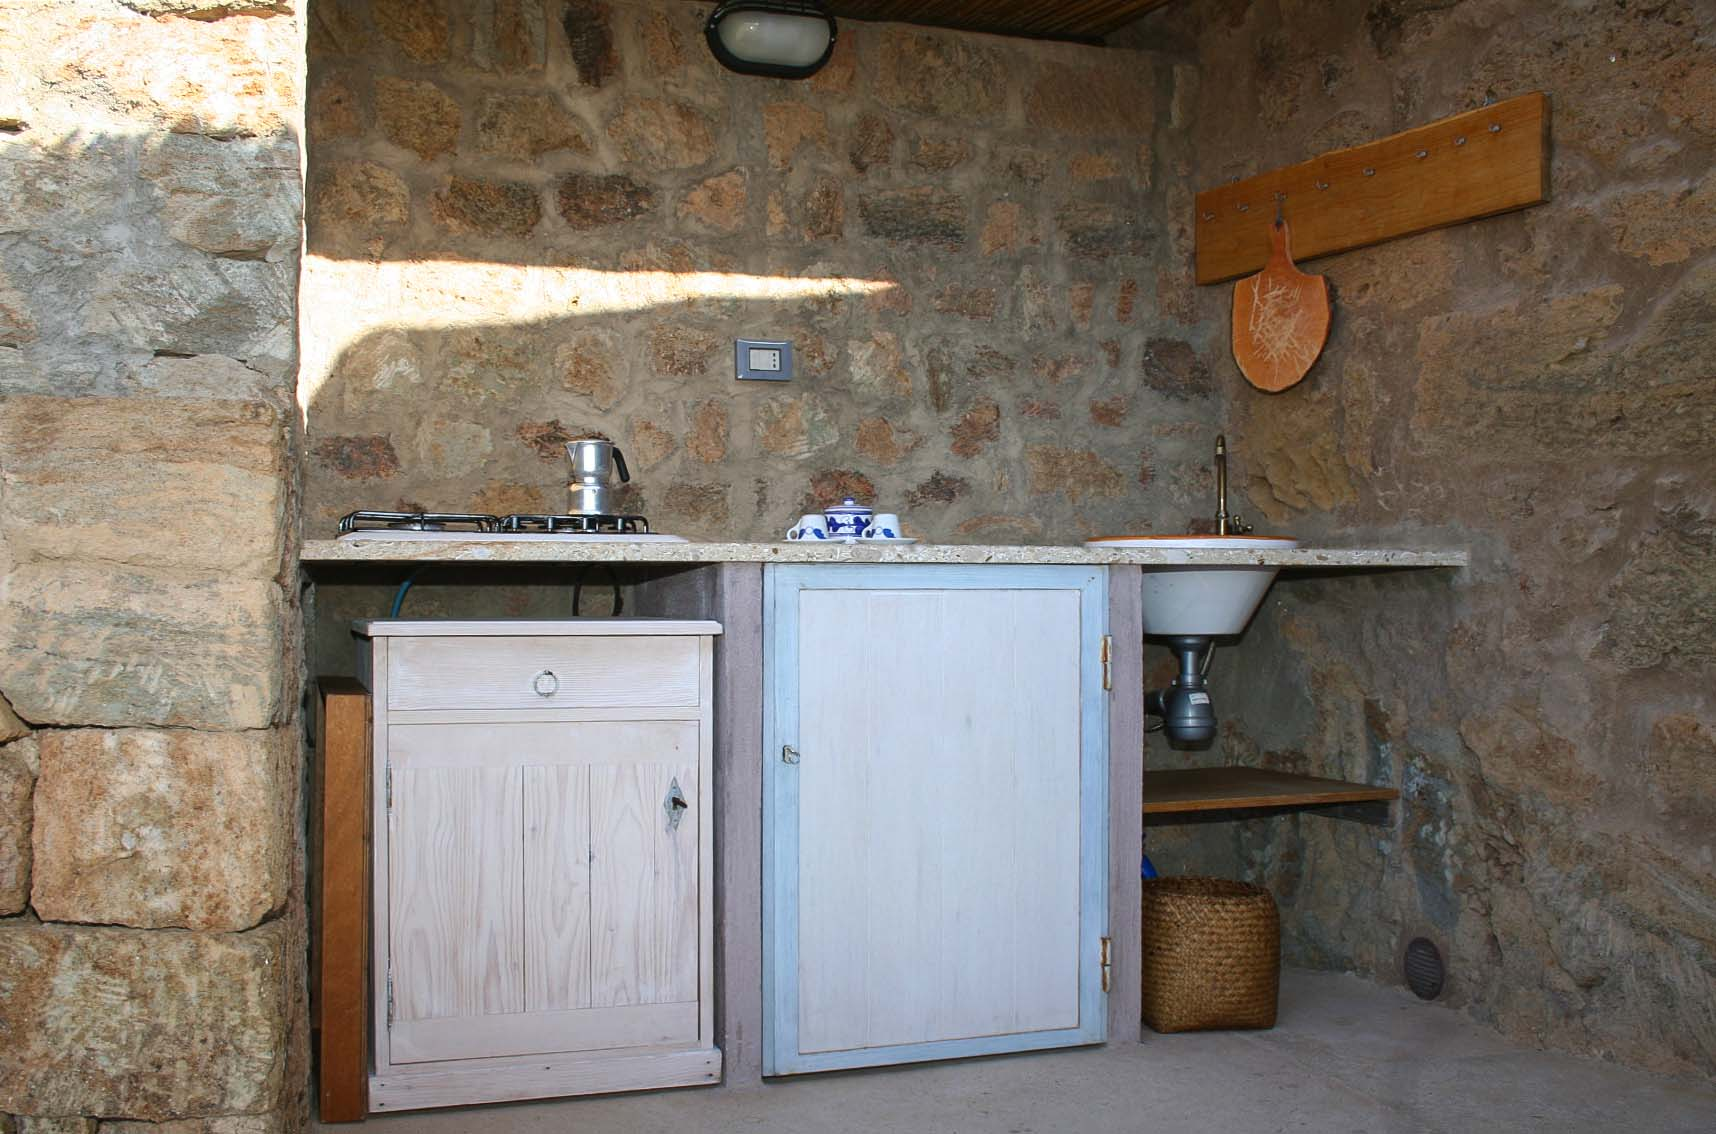 mare - another view of outdoor kitchenette